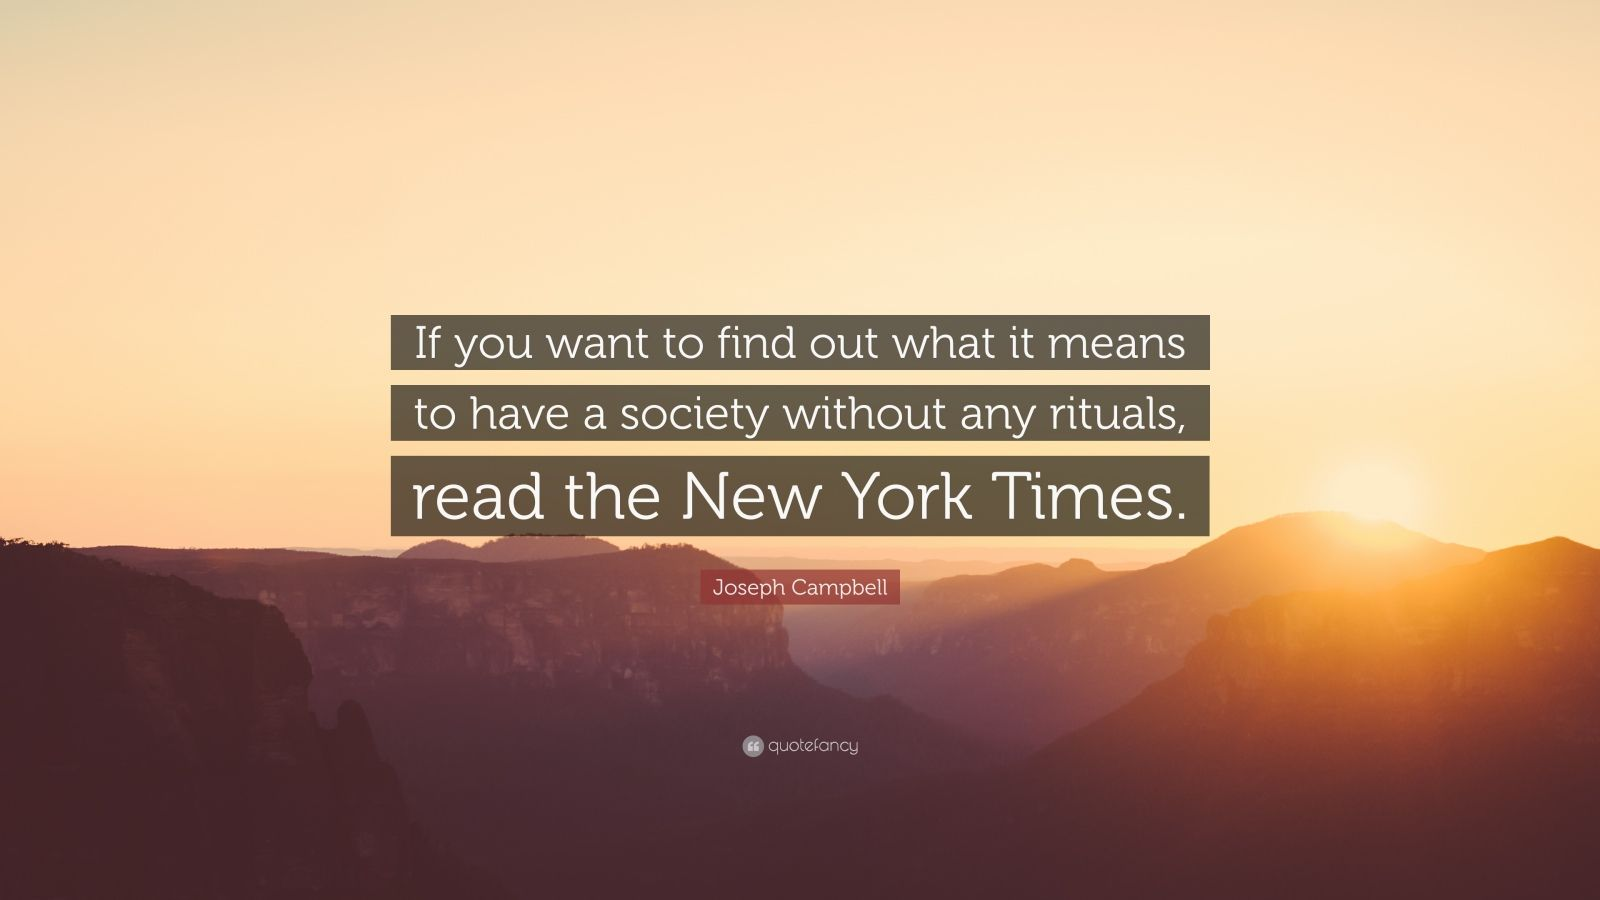 """Joseph Campbell Quote: """"If you want to find out what it means to have a society without any rituals, read the New York Times."""""""